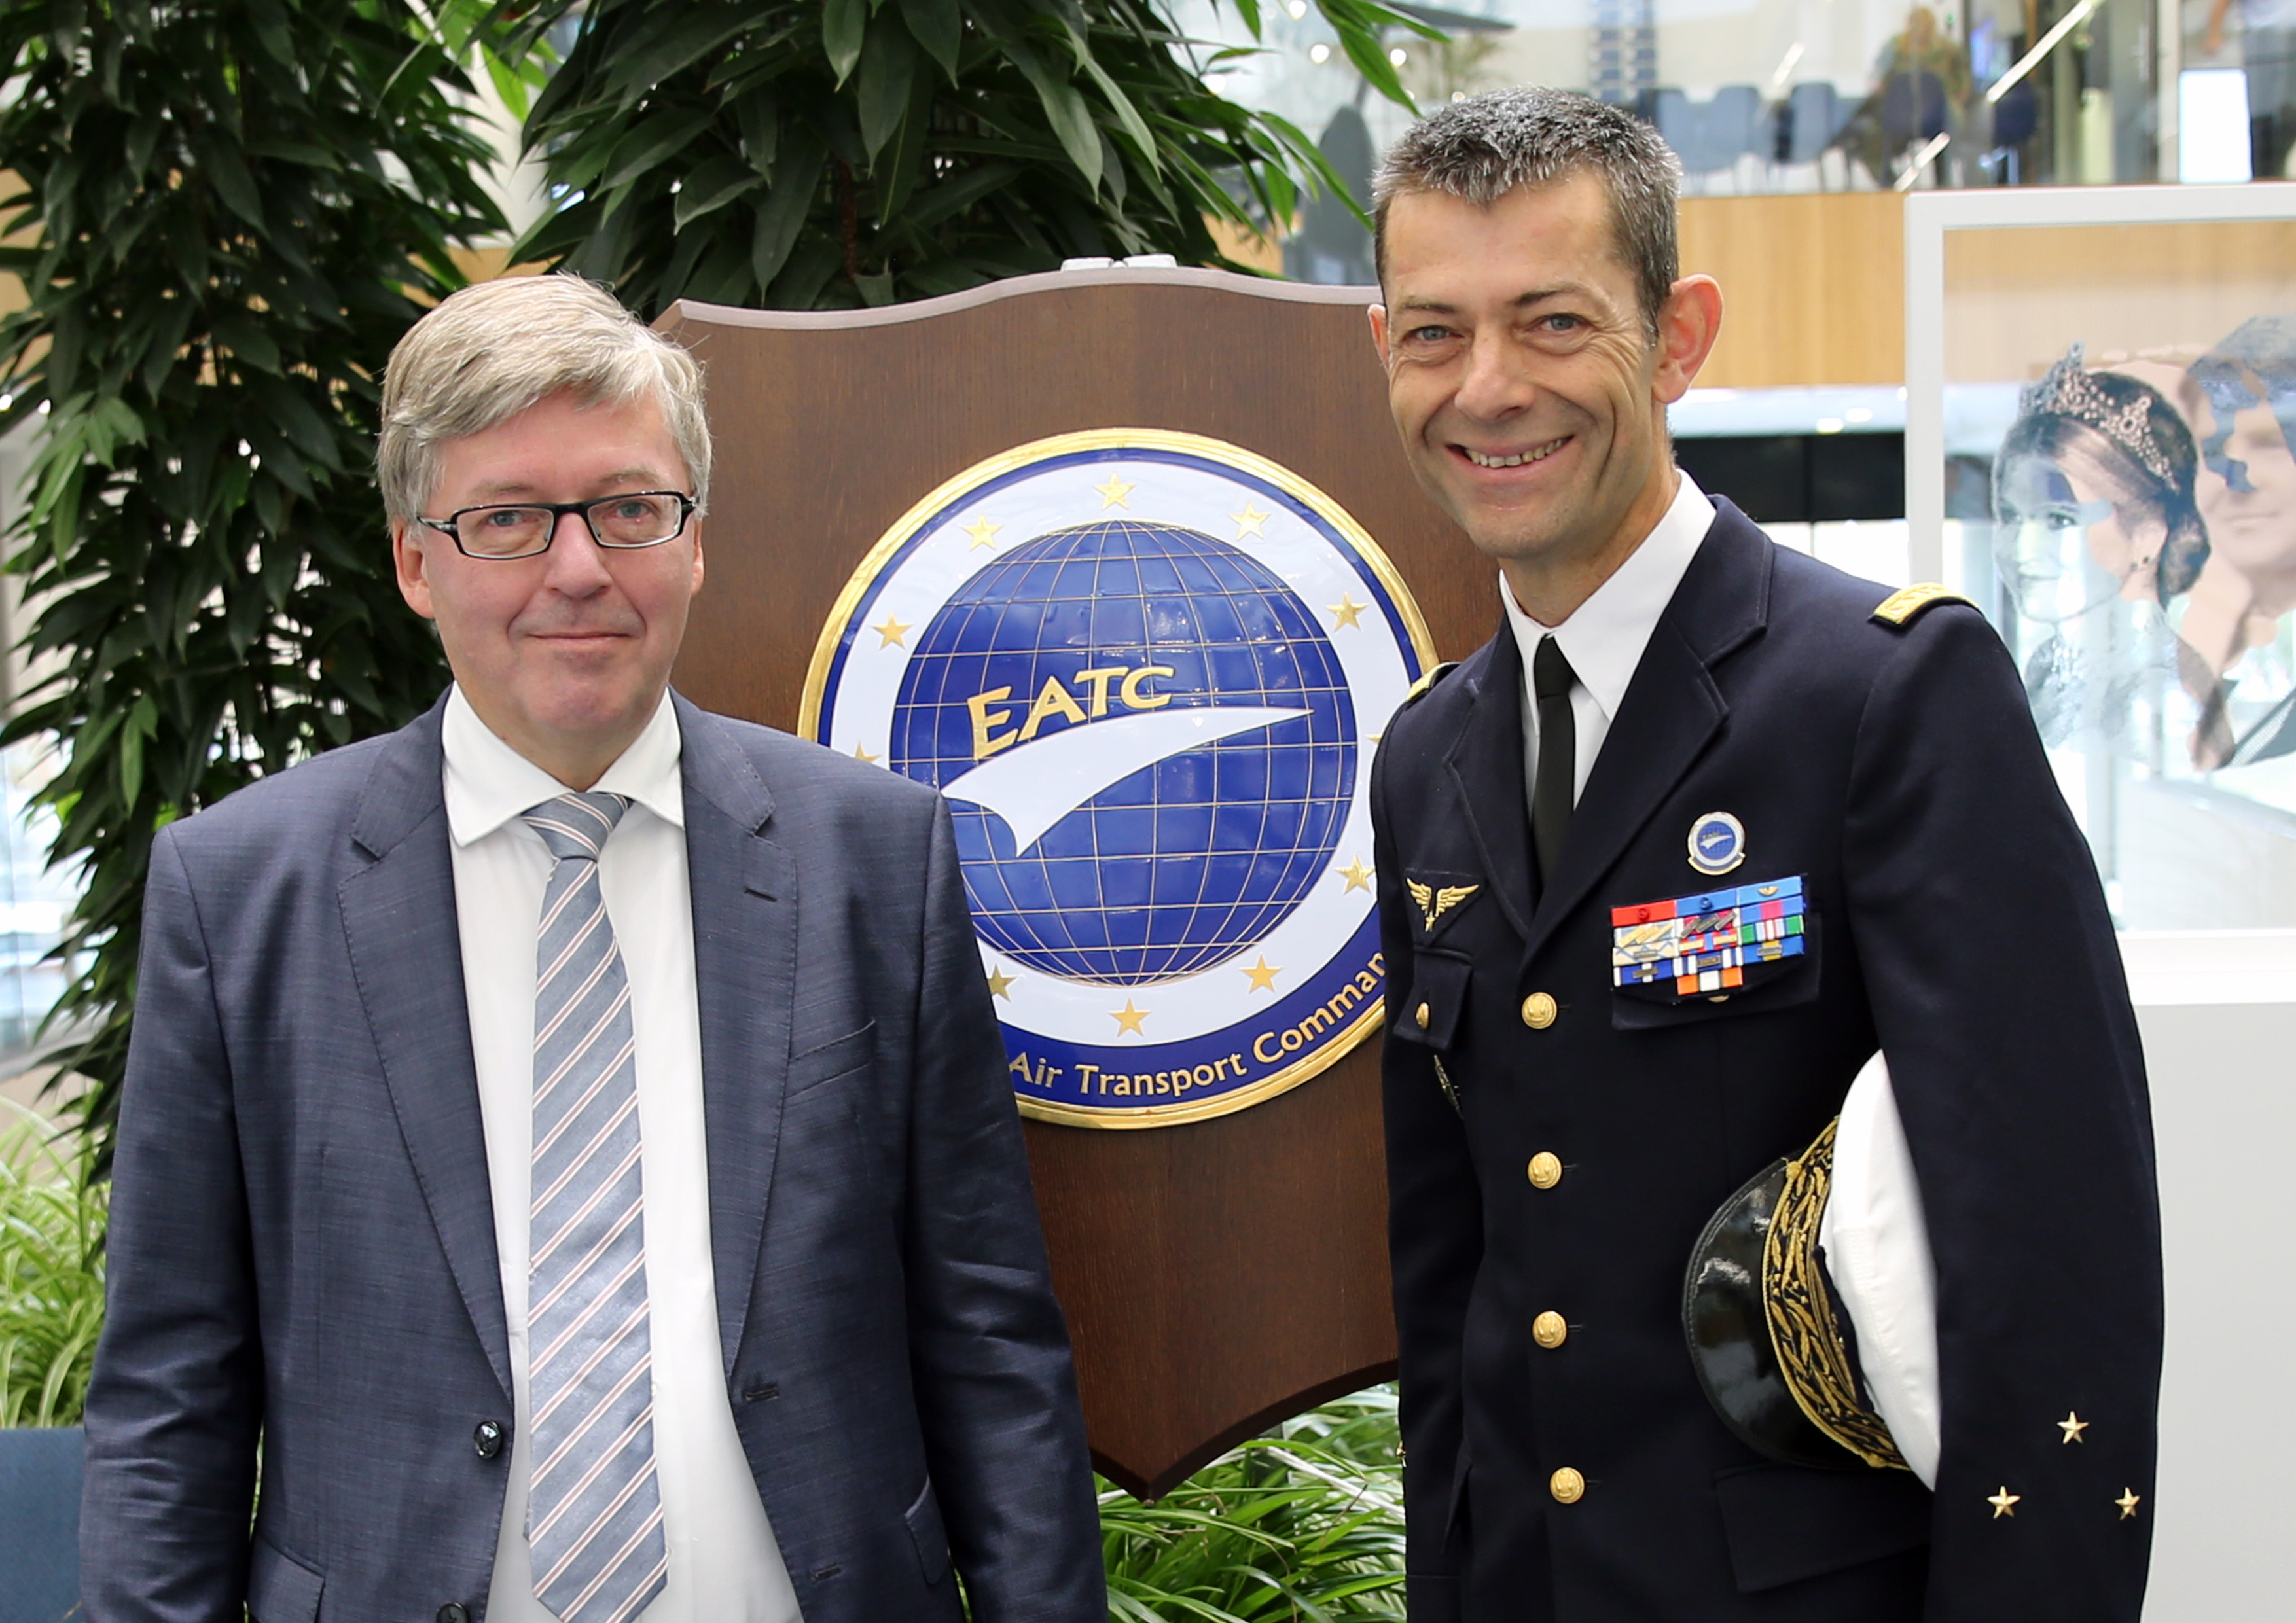 The Parliamentary Commissioner for the Armed Forces of the German Bundestag visits EATC